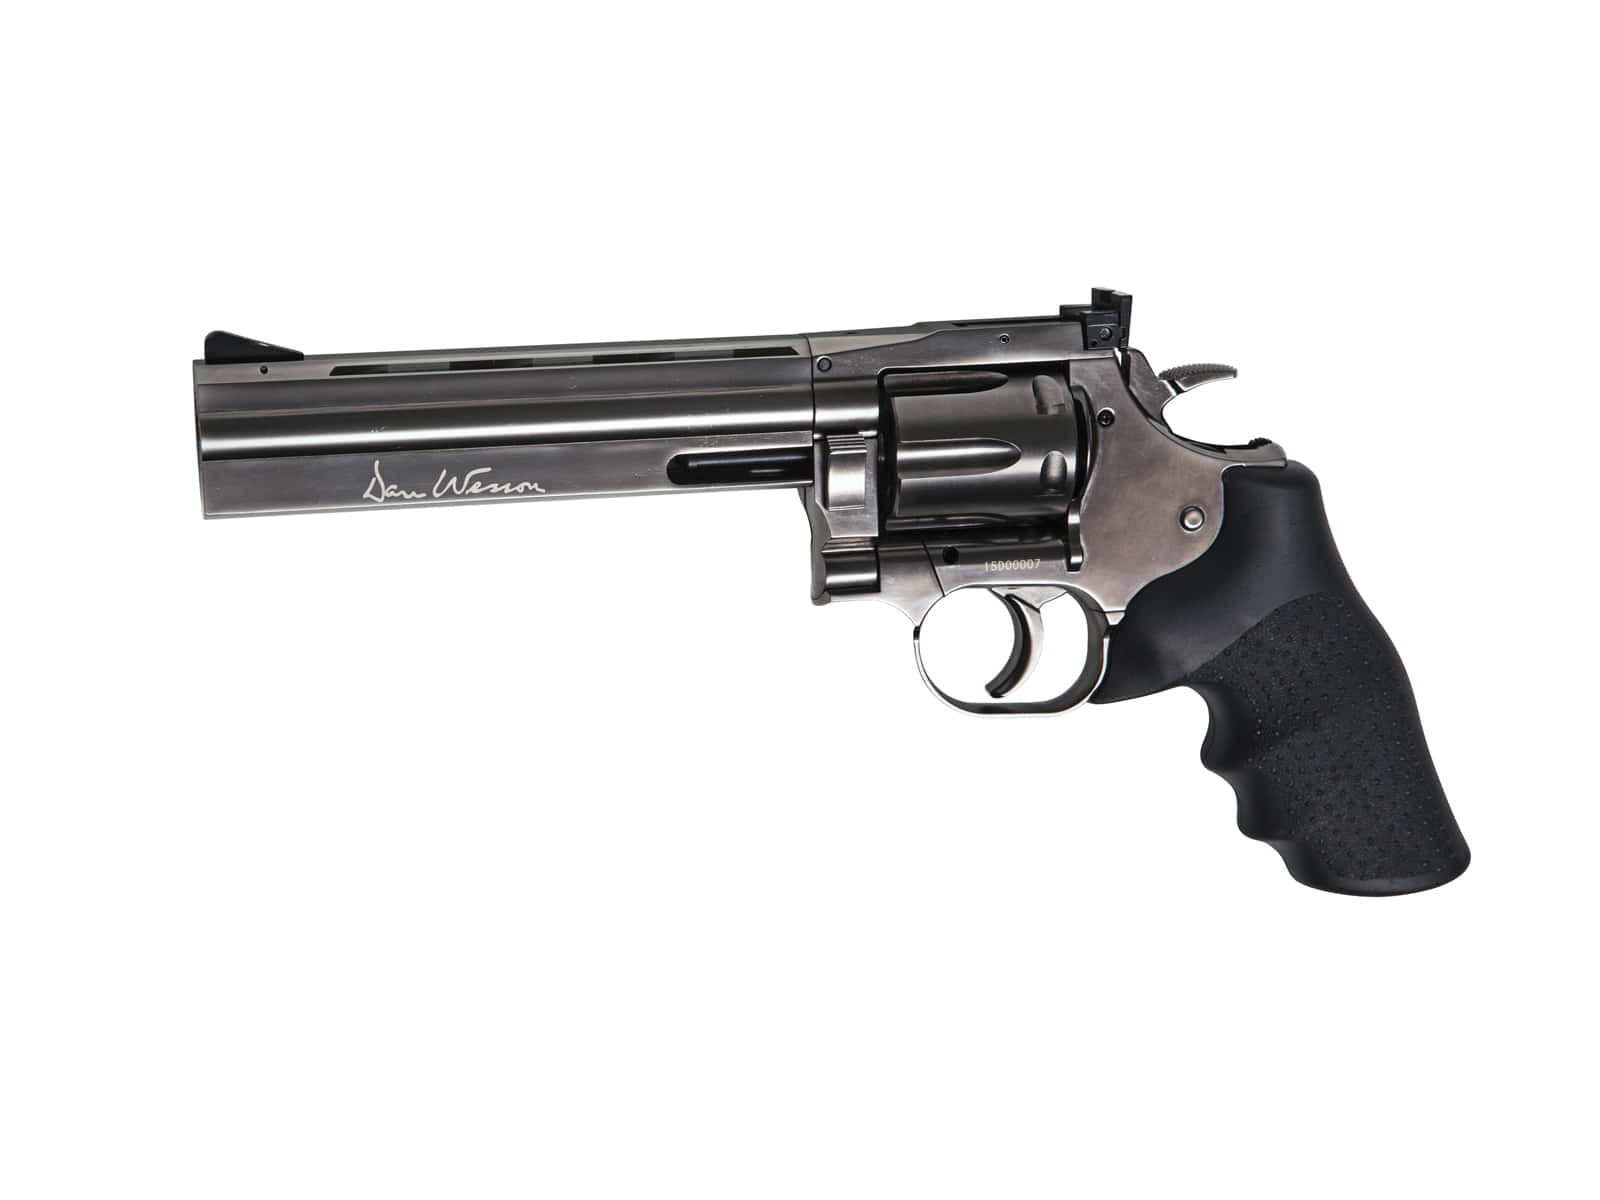 PG1928-Duplica REPLIQUE REVOLVER DAN WESSON 715 CO2 STEEL GREY 6 POUCES ASG - CPG1920